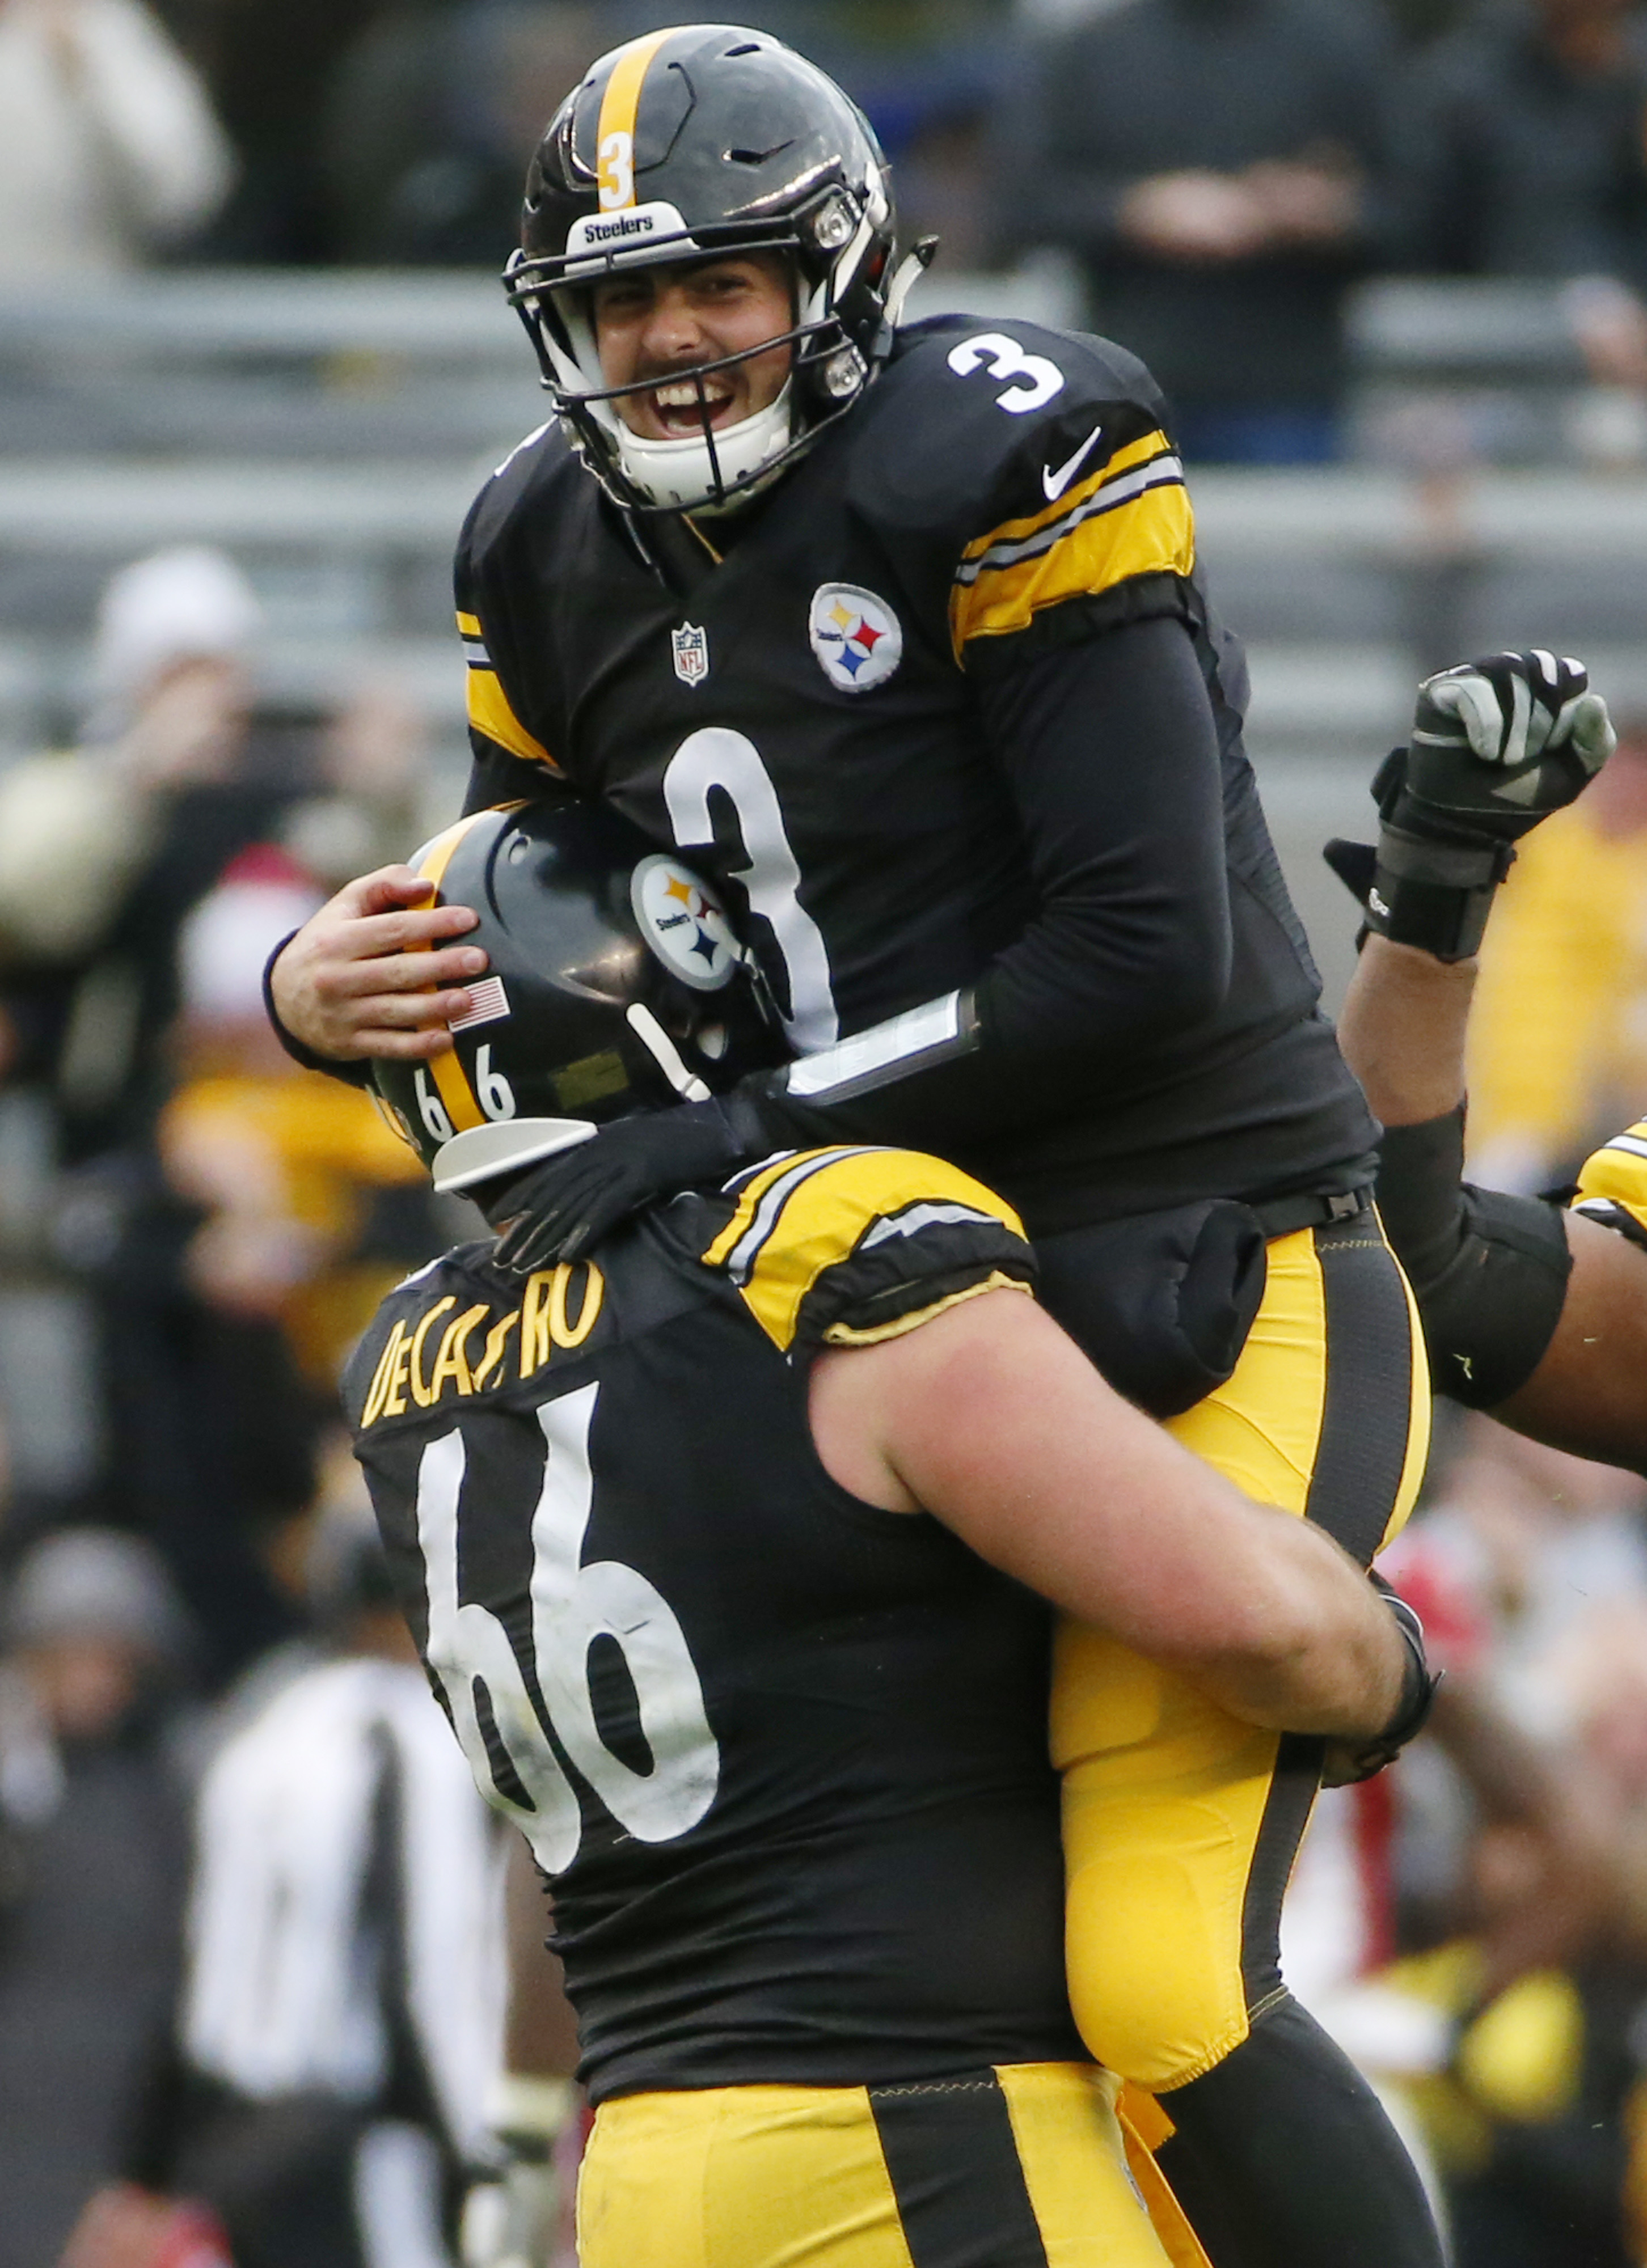 Pittsburgh Steelers quarterback Landry Jones (3) celebrates with guard David DeCastro (66) after throwing a touchdown pass to wide receiver Martavis Bryant (10) in the fourth quarter an NFL football game against the Arizona Cardinals, Sunday, Oct. 18, 201